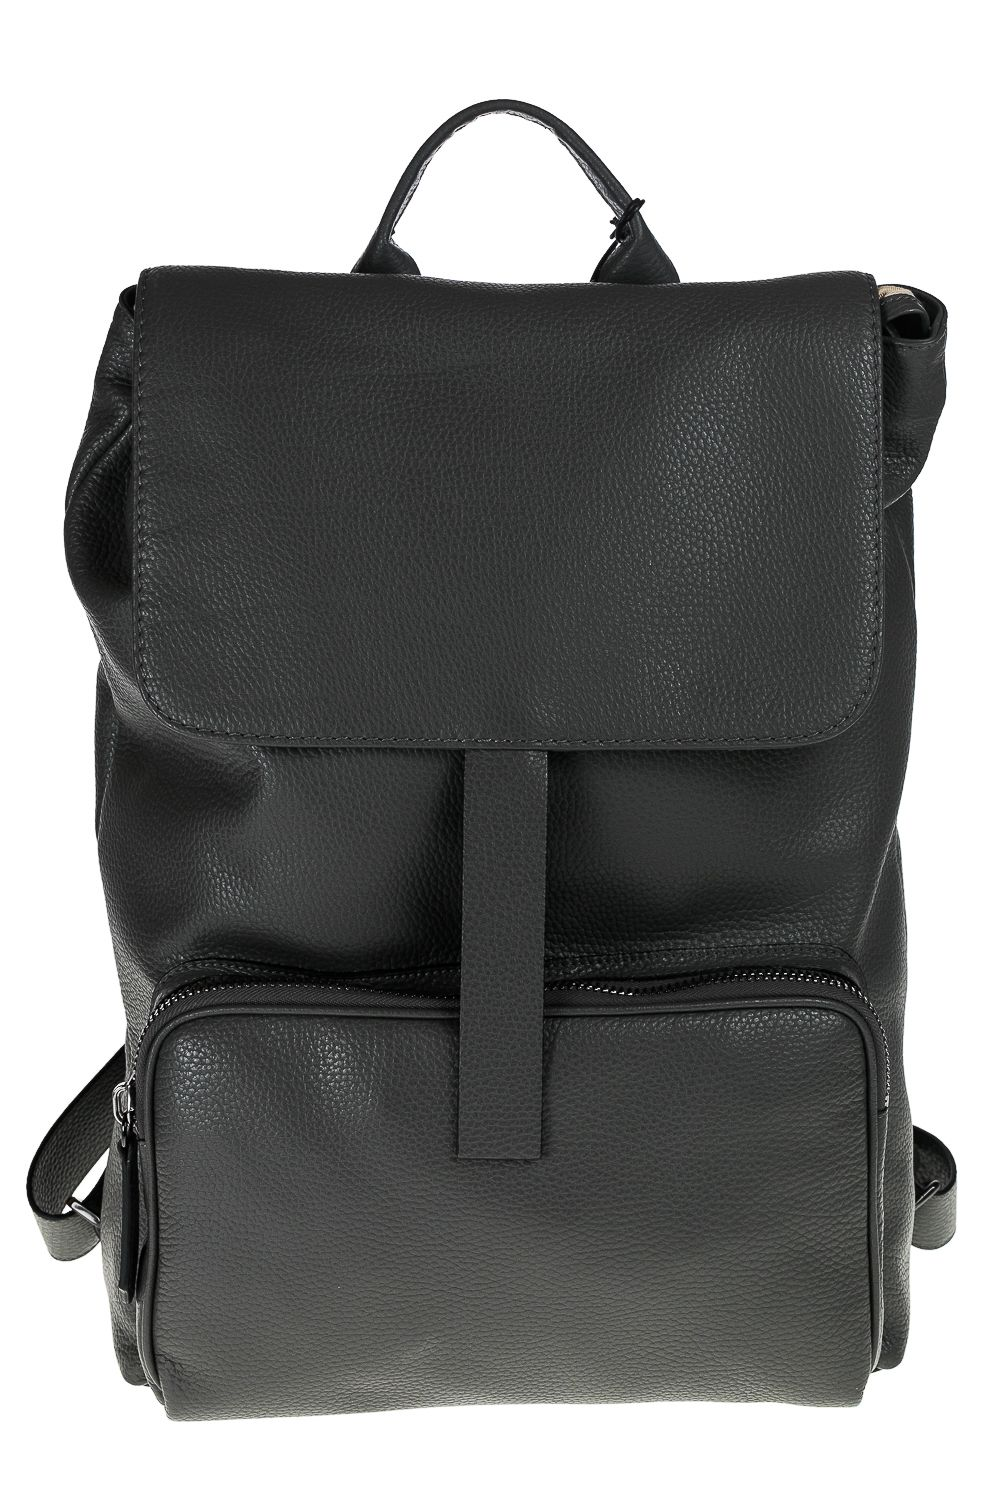 Zanellato Backpack Ildo Dollarone